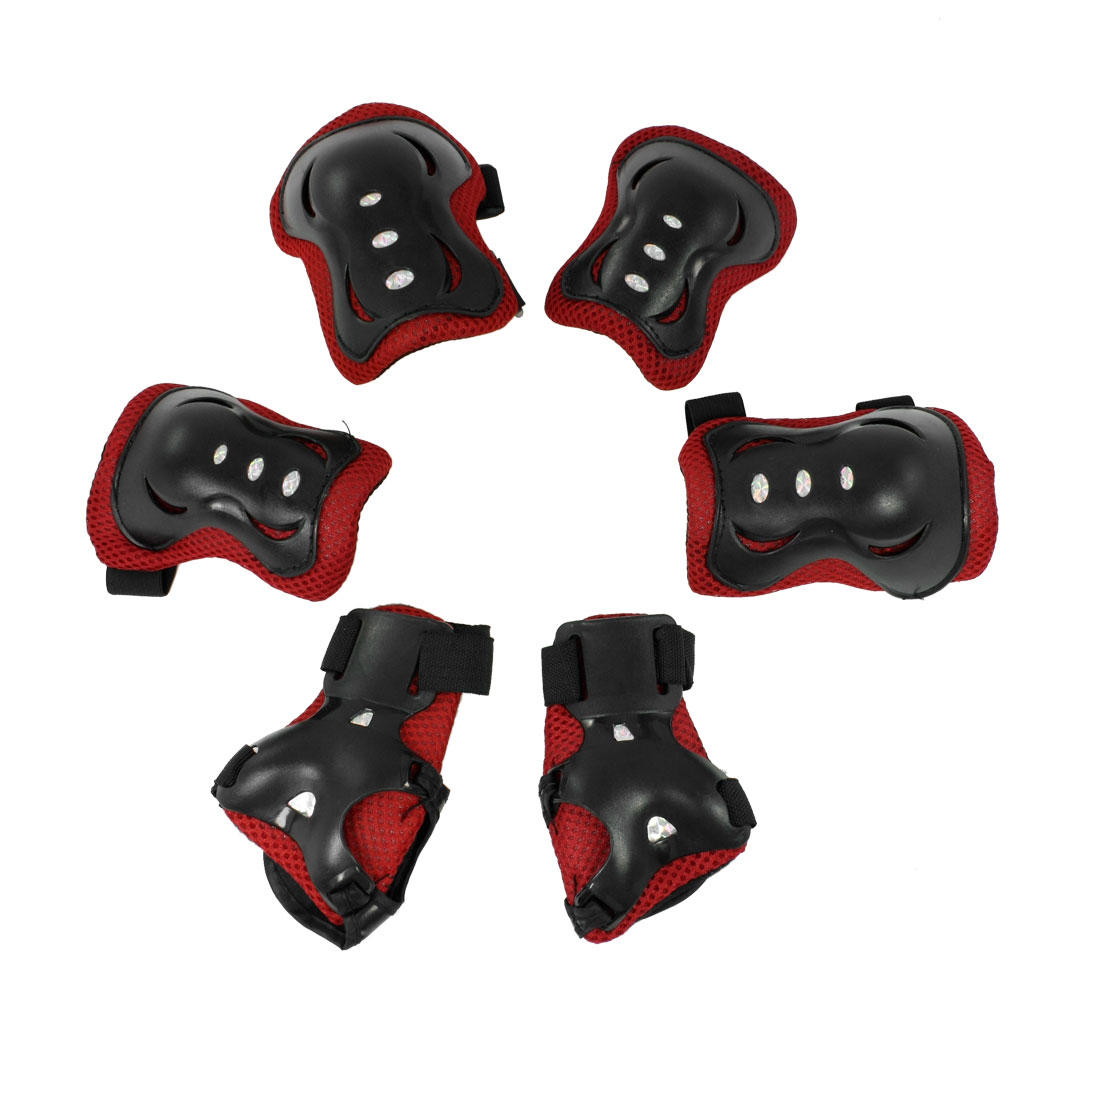 Kids Black Red Adjustable Elastic Starp Bands Fastener Palm Elbow Knee Protector 3 in 1 Set